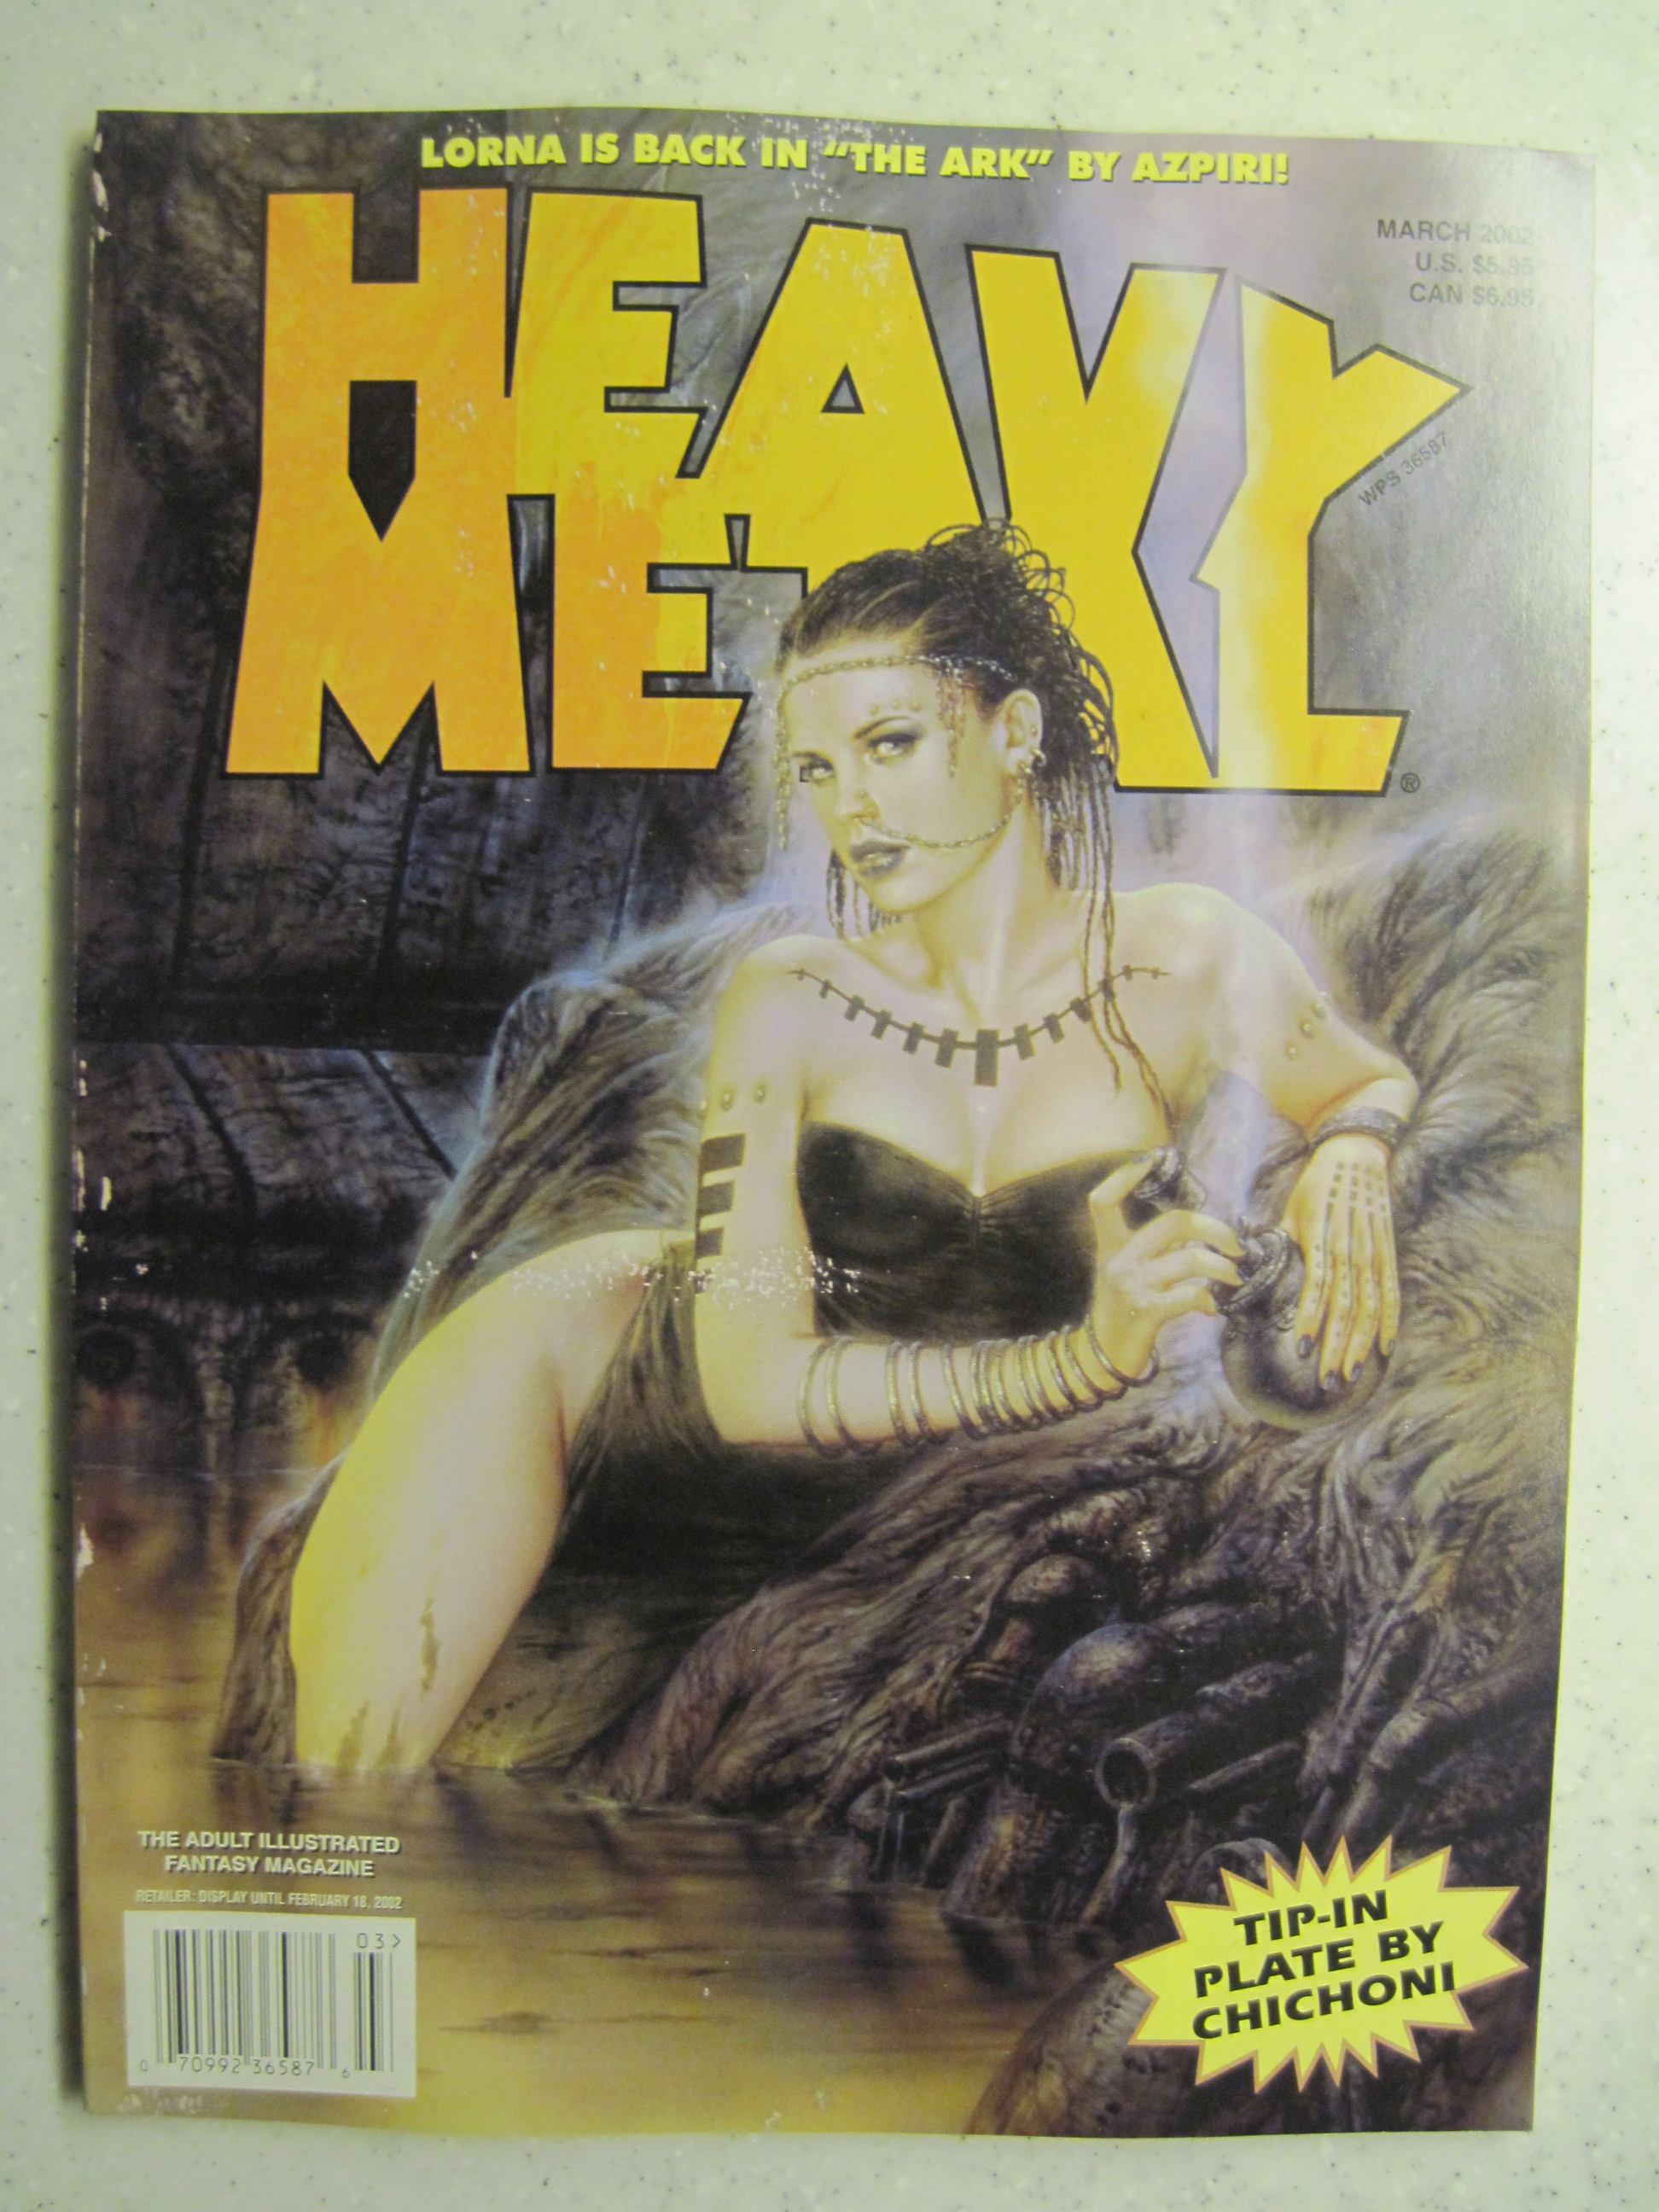 HEAVY METAL MAGAZINE MAR 2002